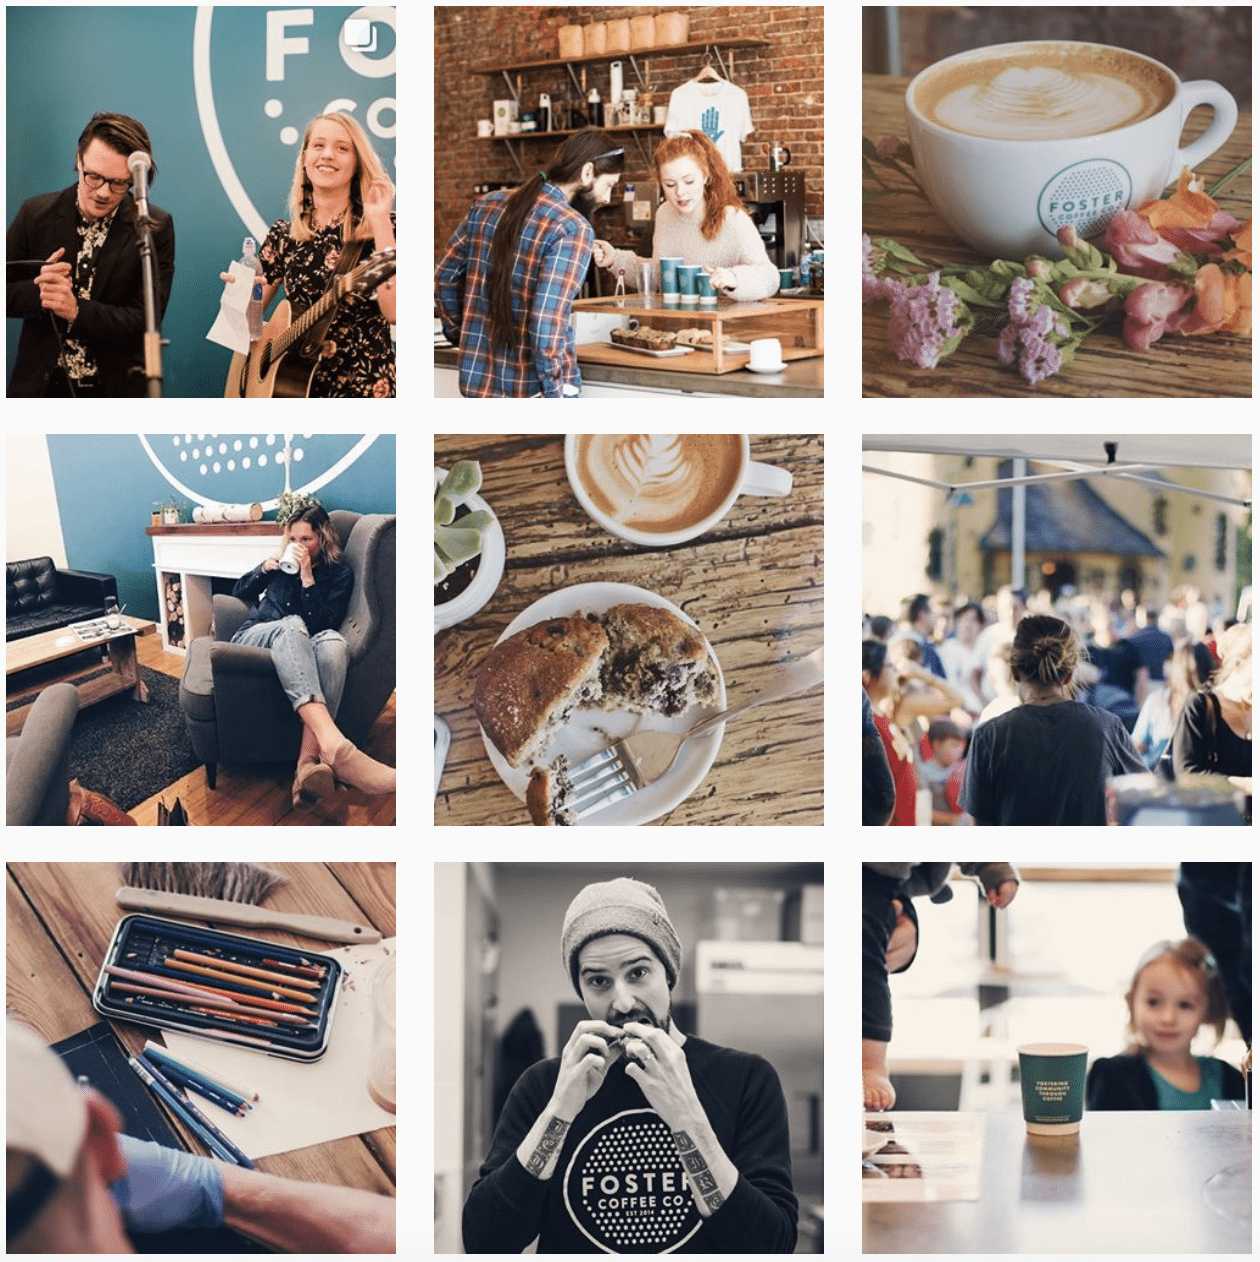 Foster Coffee Co instagram photos